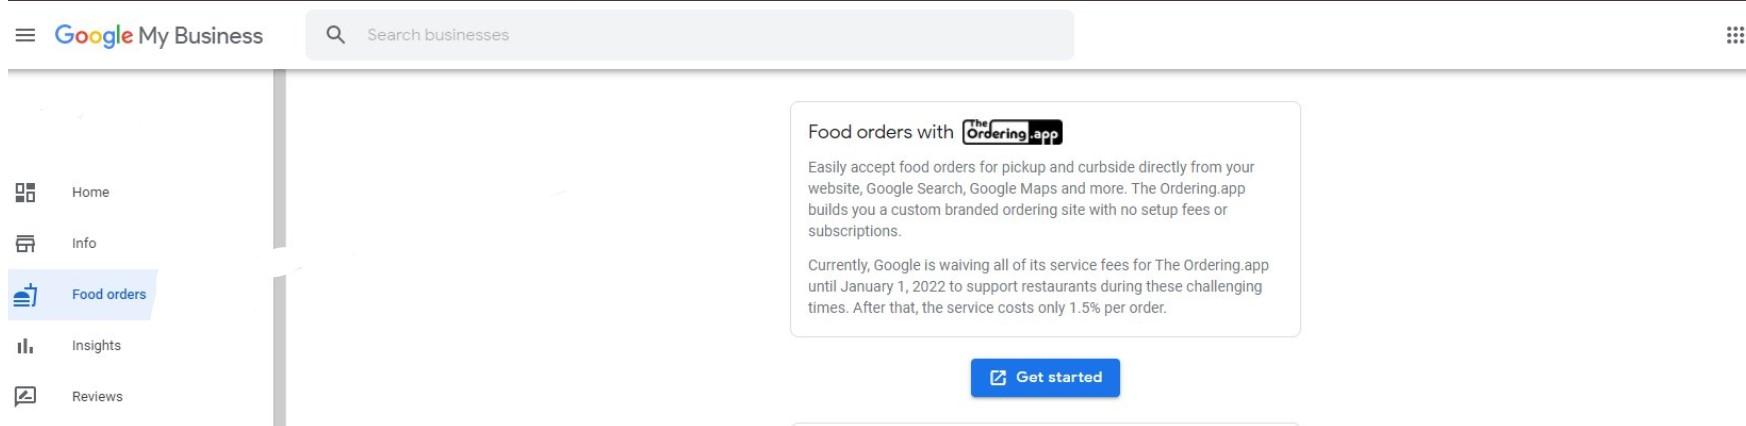 Google My Business Food Orders Section Screenshot